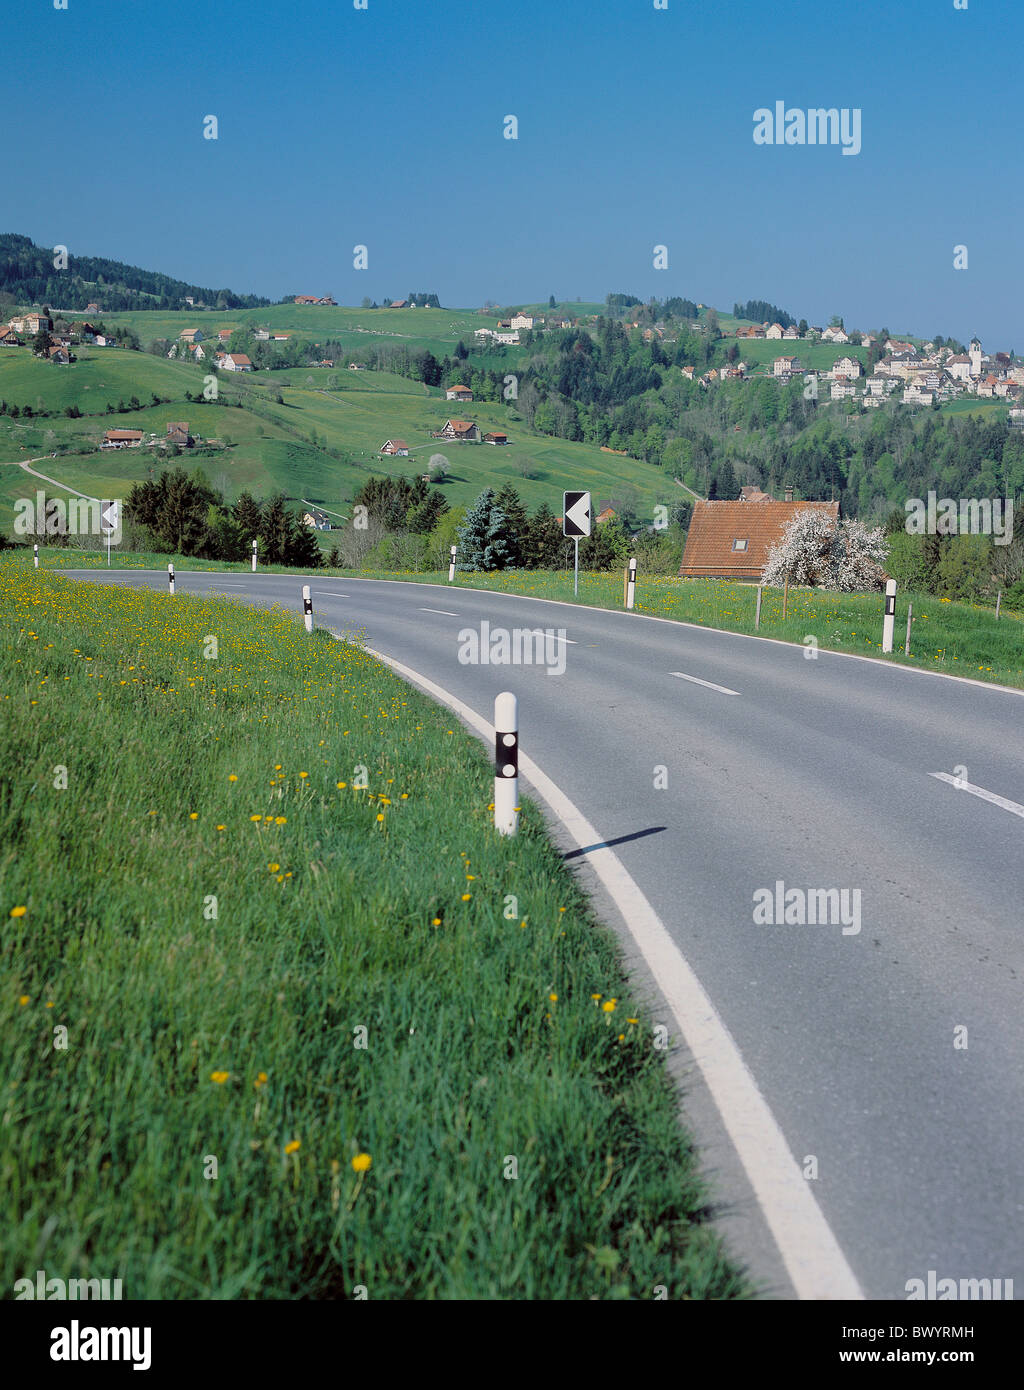 Country road street Suisse Europe Appenzell derrière trompant Scenery Photo Stock